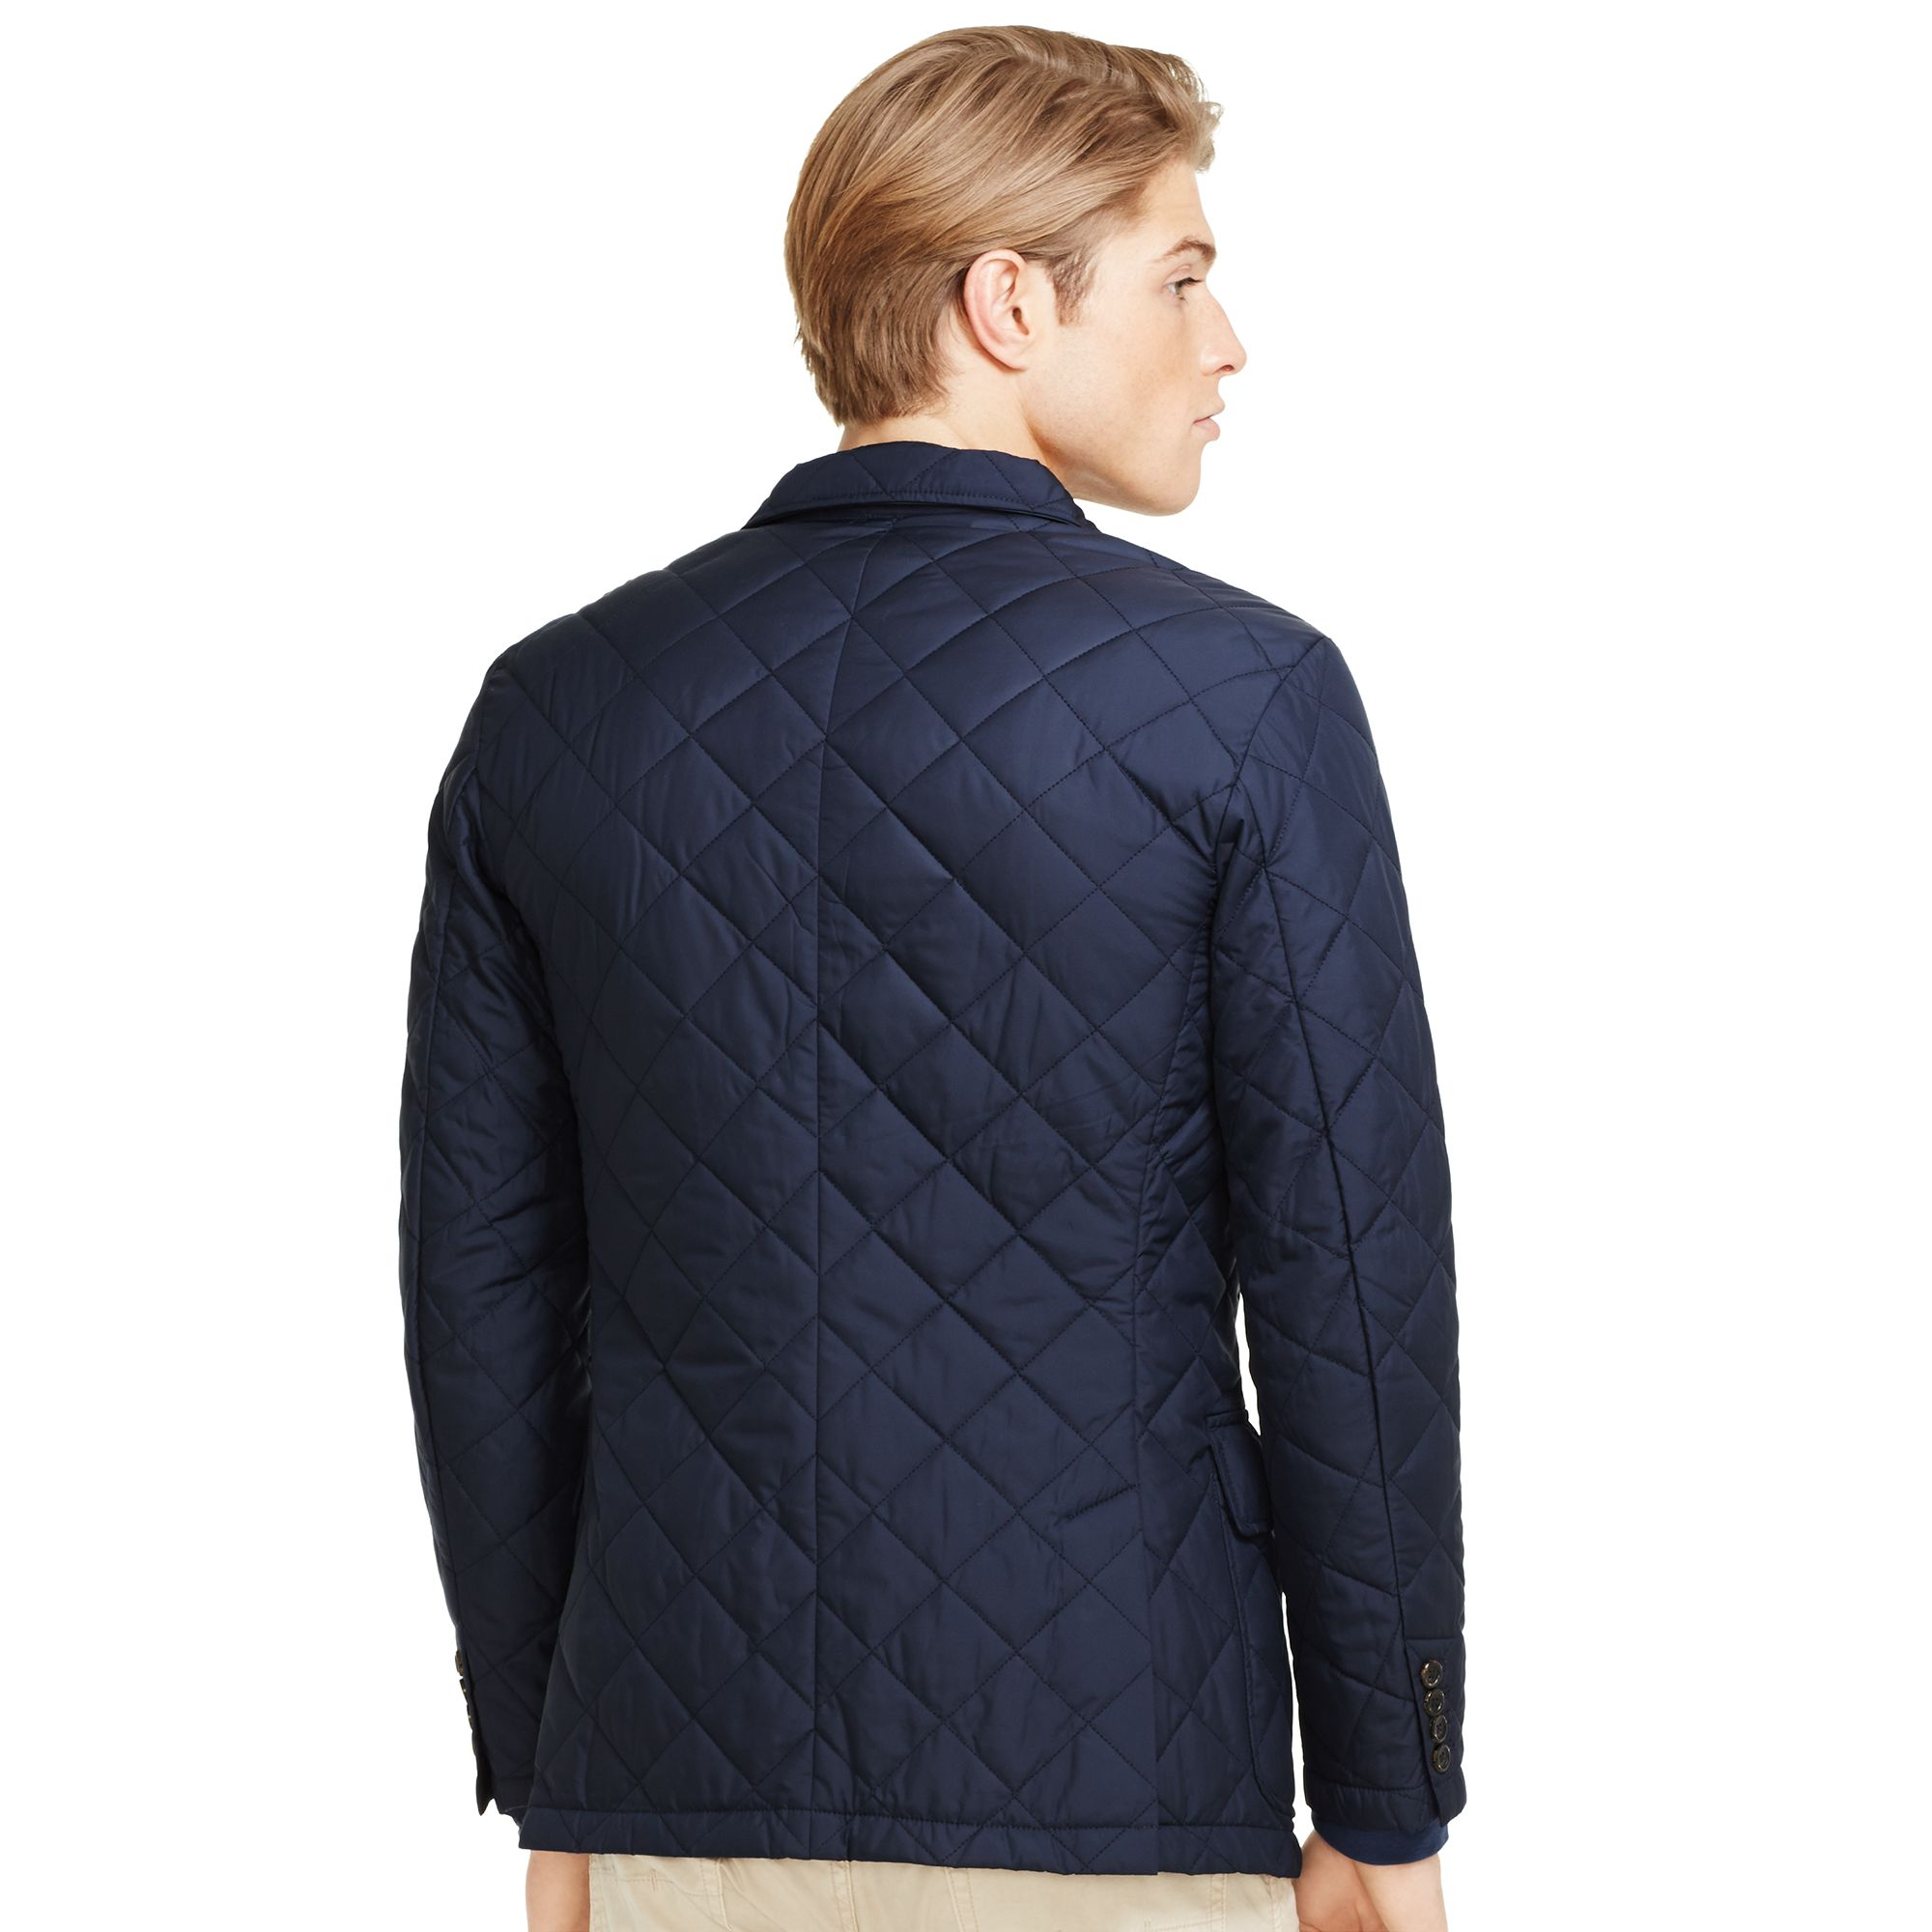 Marein polo ralph lauren quilted sports jacket aviator navy for Polo shirt with sport coat